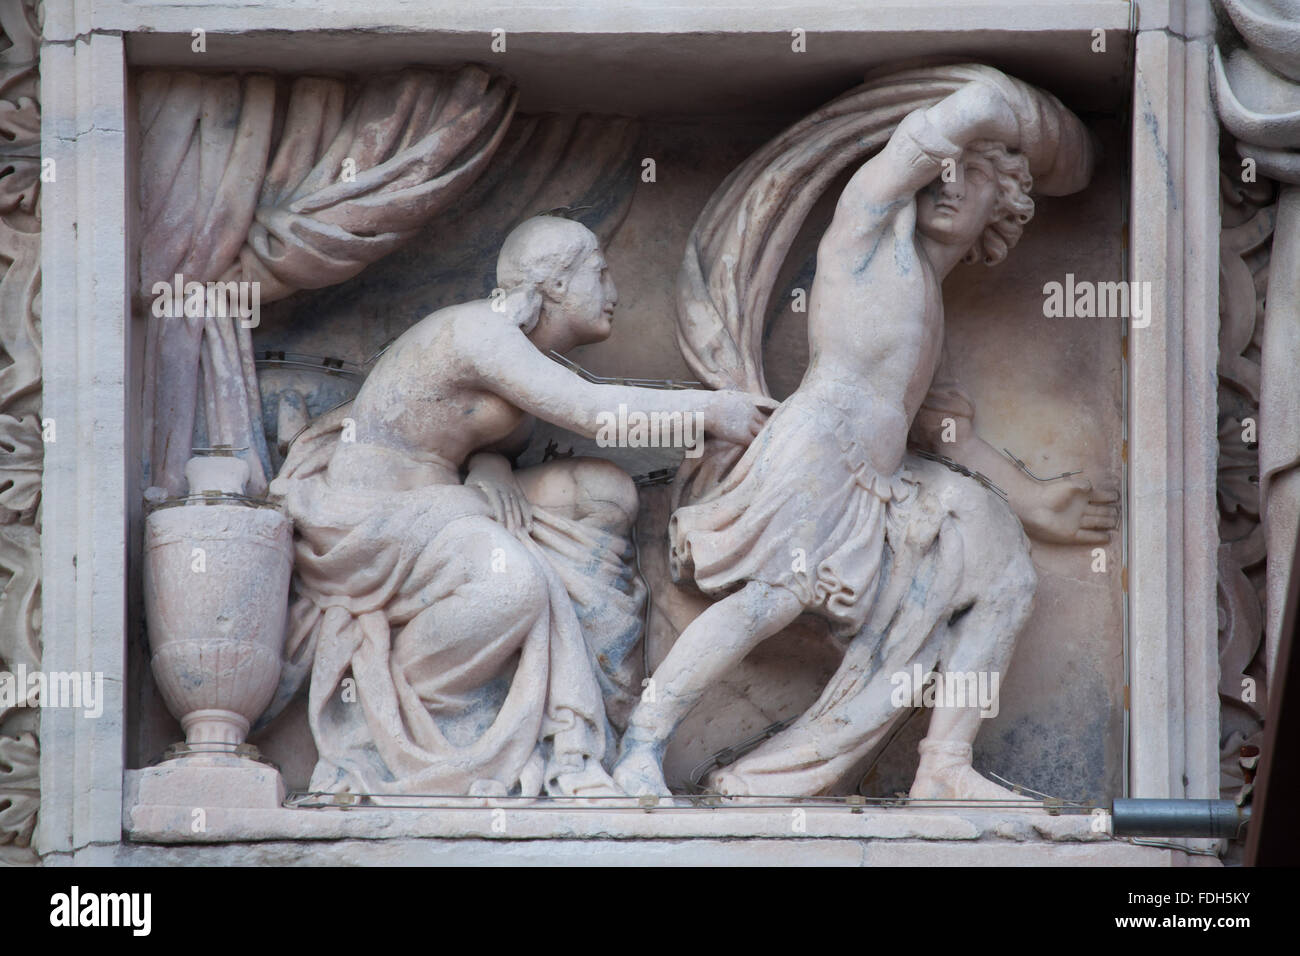 Joseph and Potiphar's wife. Marble relief on the south facade of the Milan Cathedral (Duomo di Milano) in Milan, - Stock Image